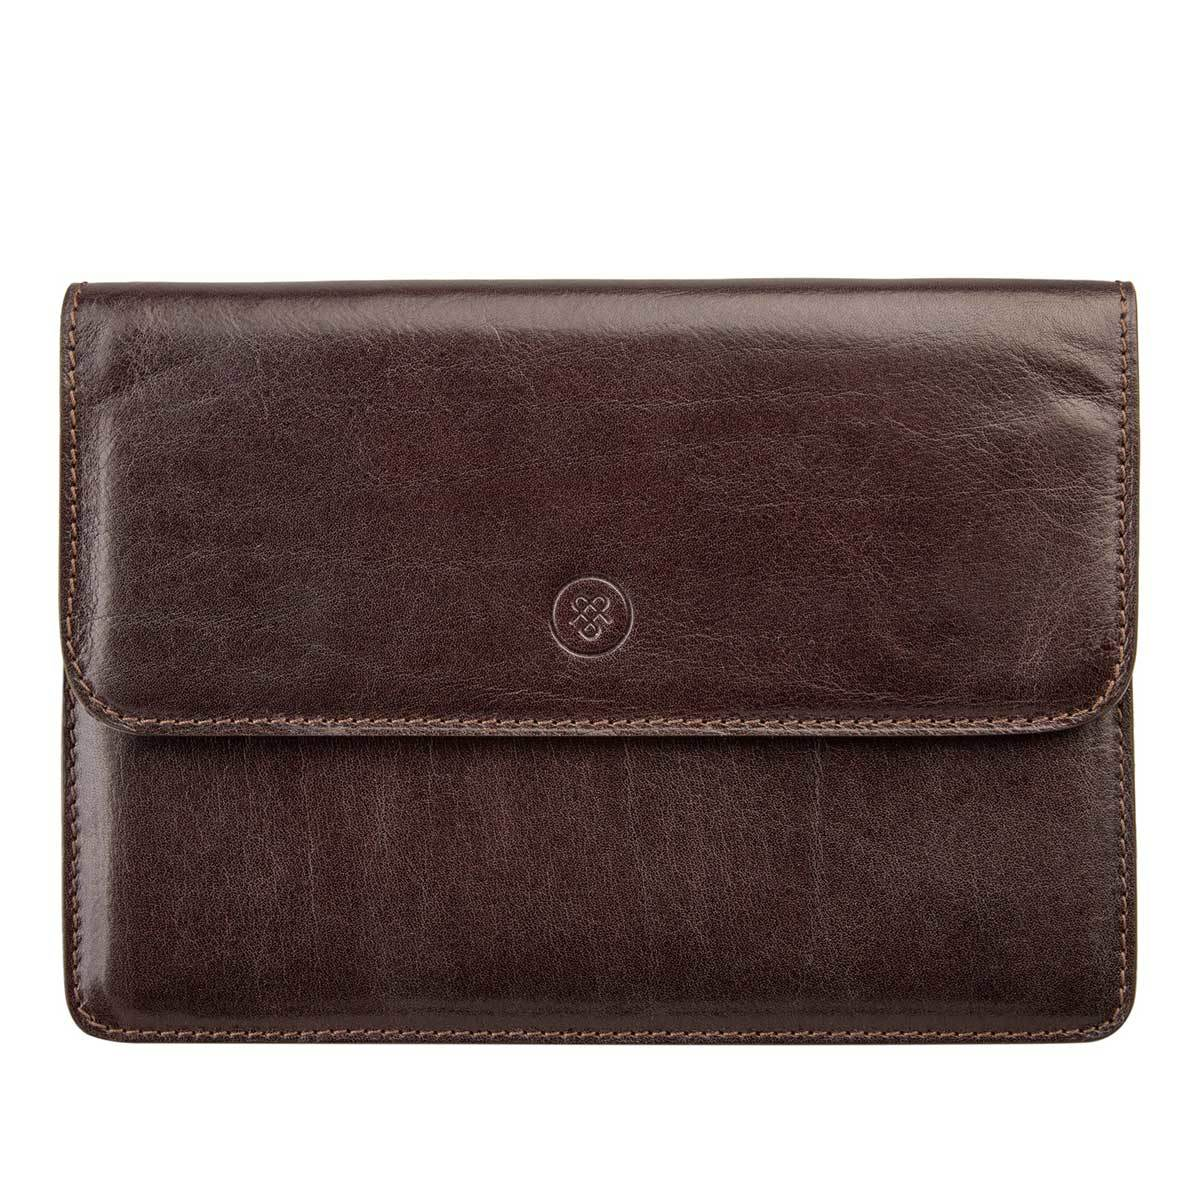 MAXWELL SCOTT BAGS Handcrafted Luxury Brown Leather Travel Wallet